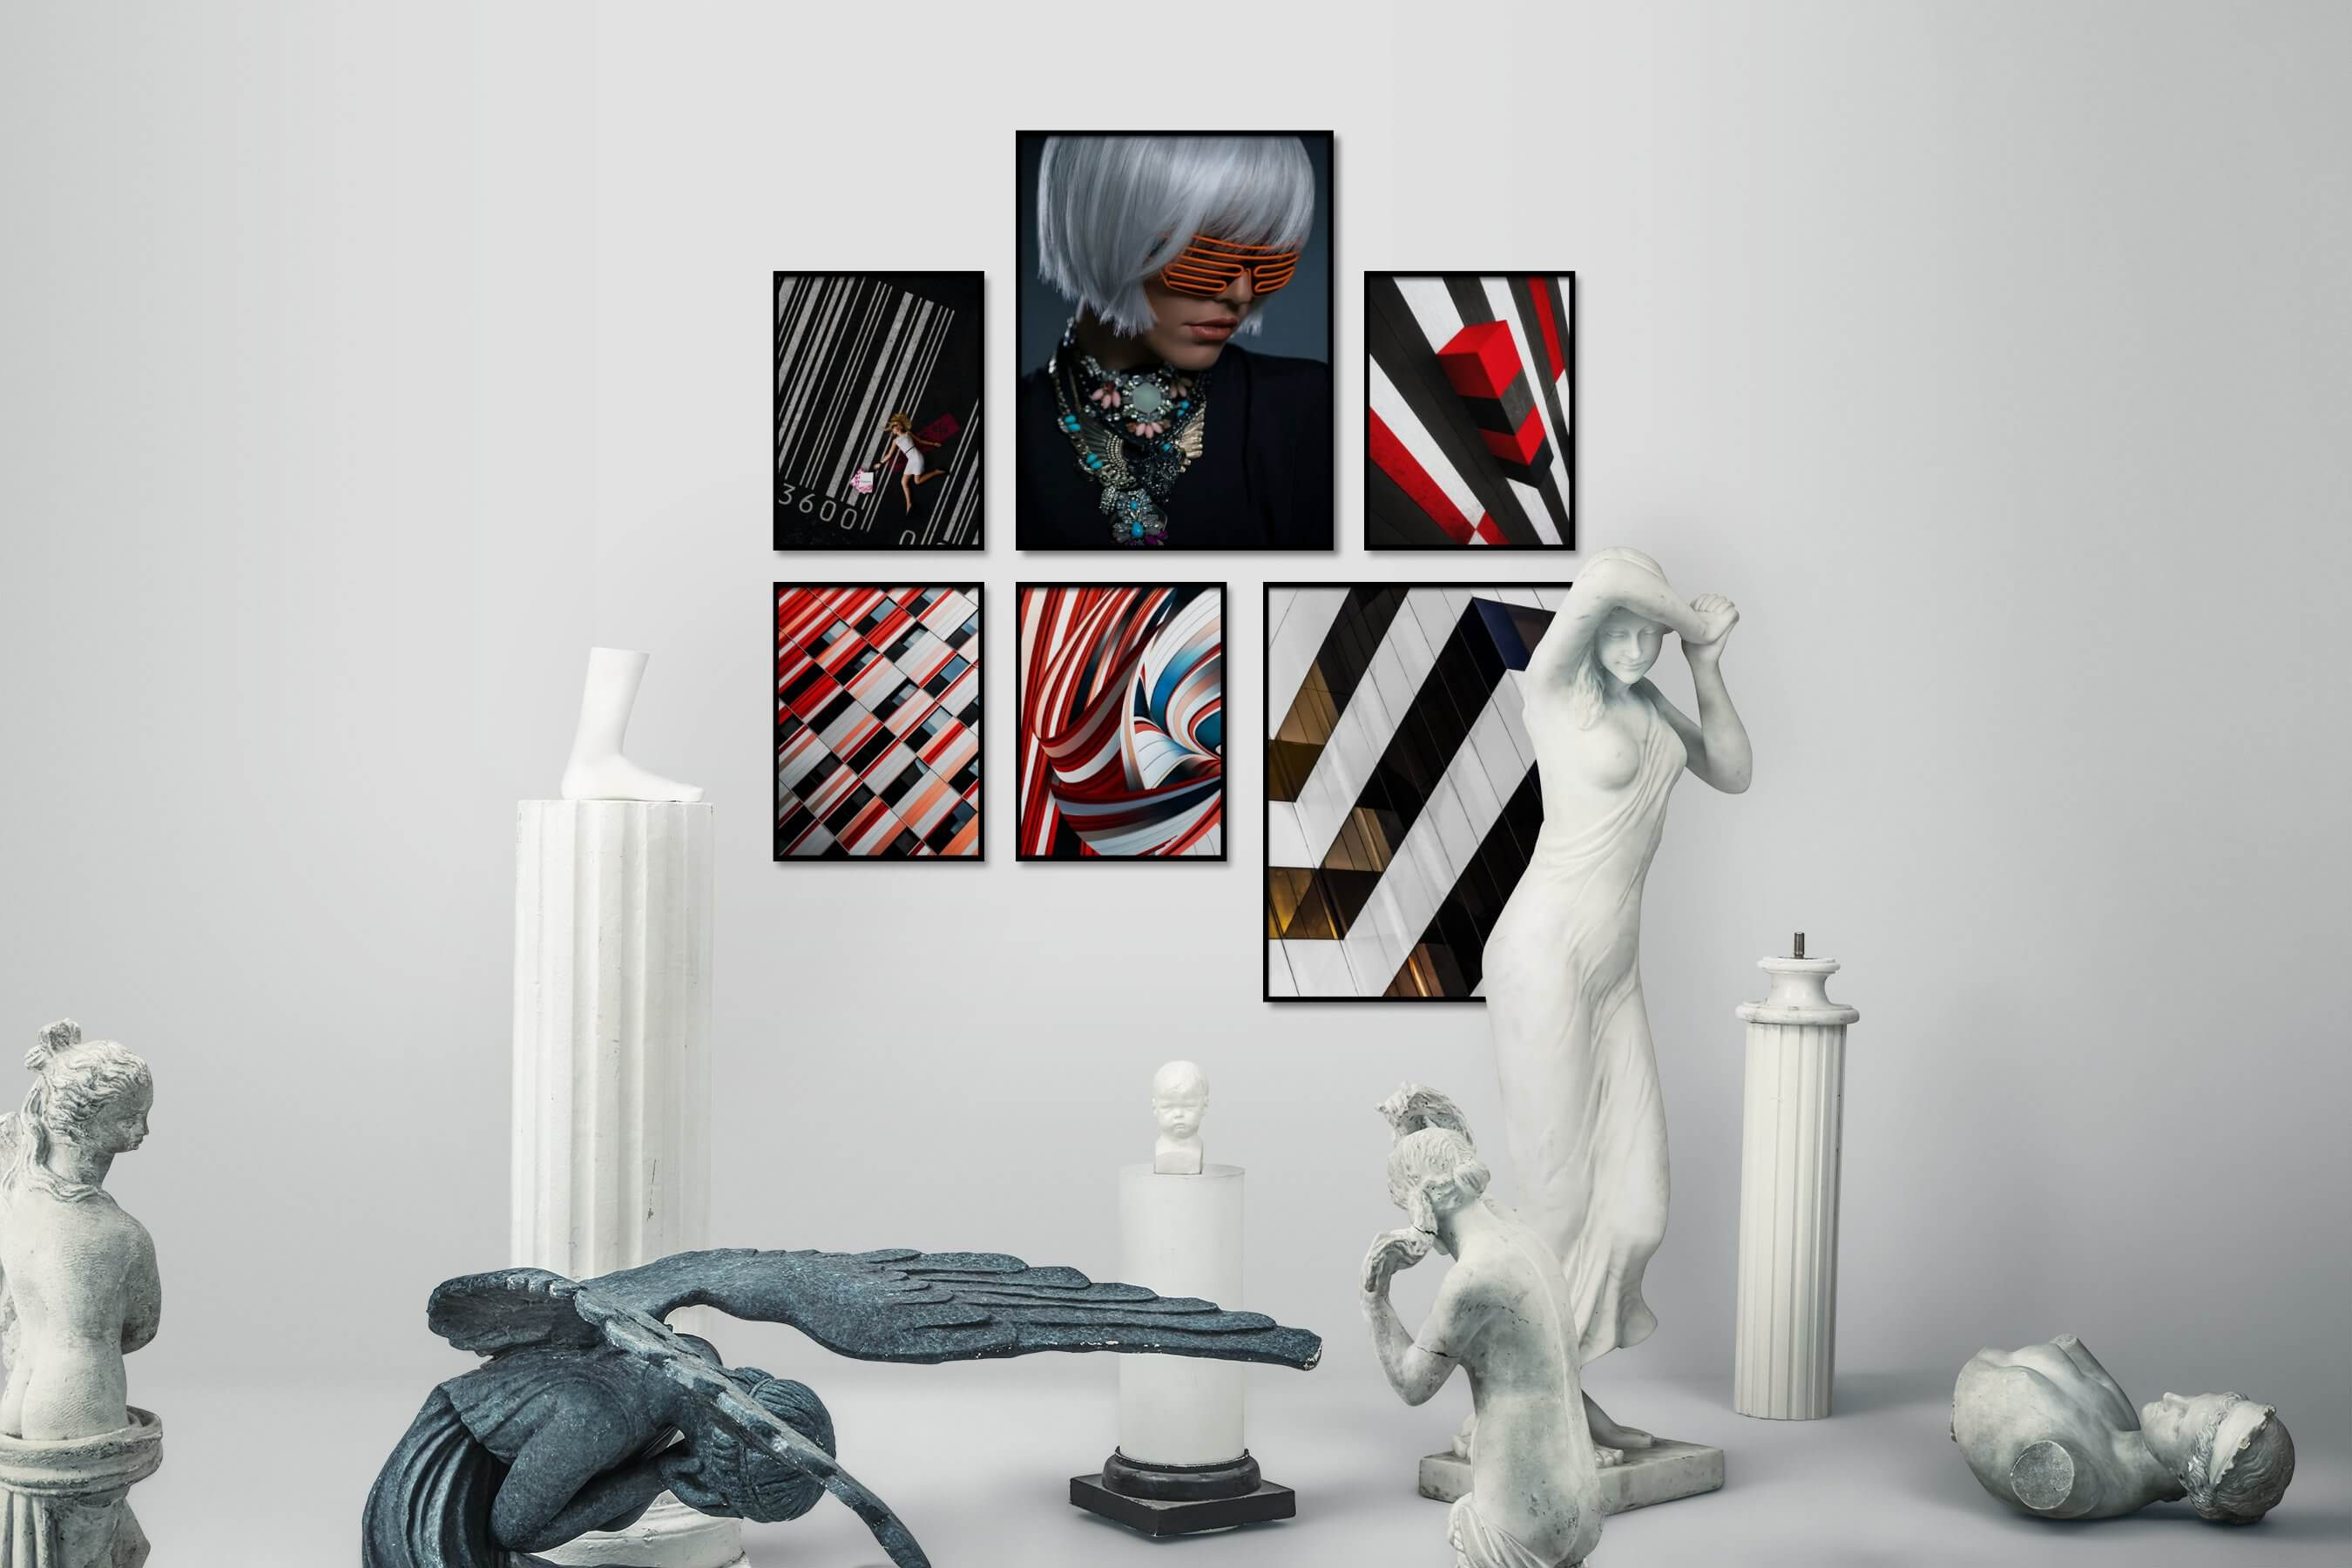 Gallery wall idea with six framed pictures arranged on a wall depicting Fashion & Beauty, City Life, Colorful, For the Moderate, and For the Maximalist